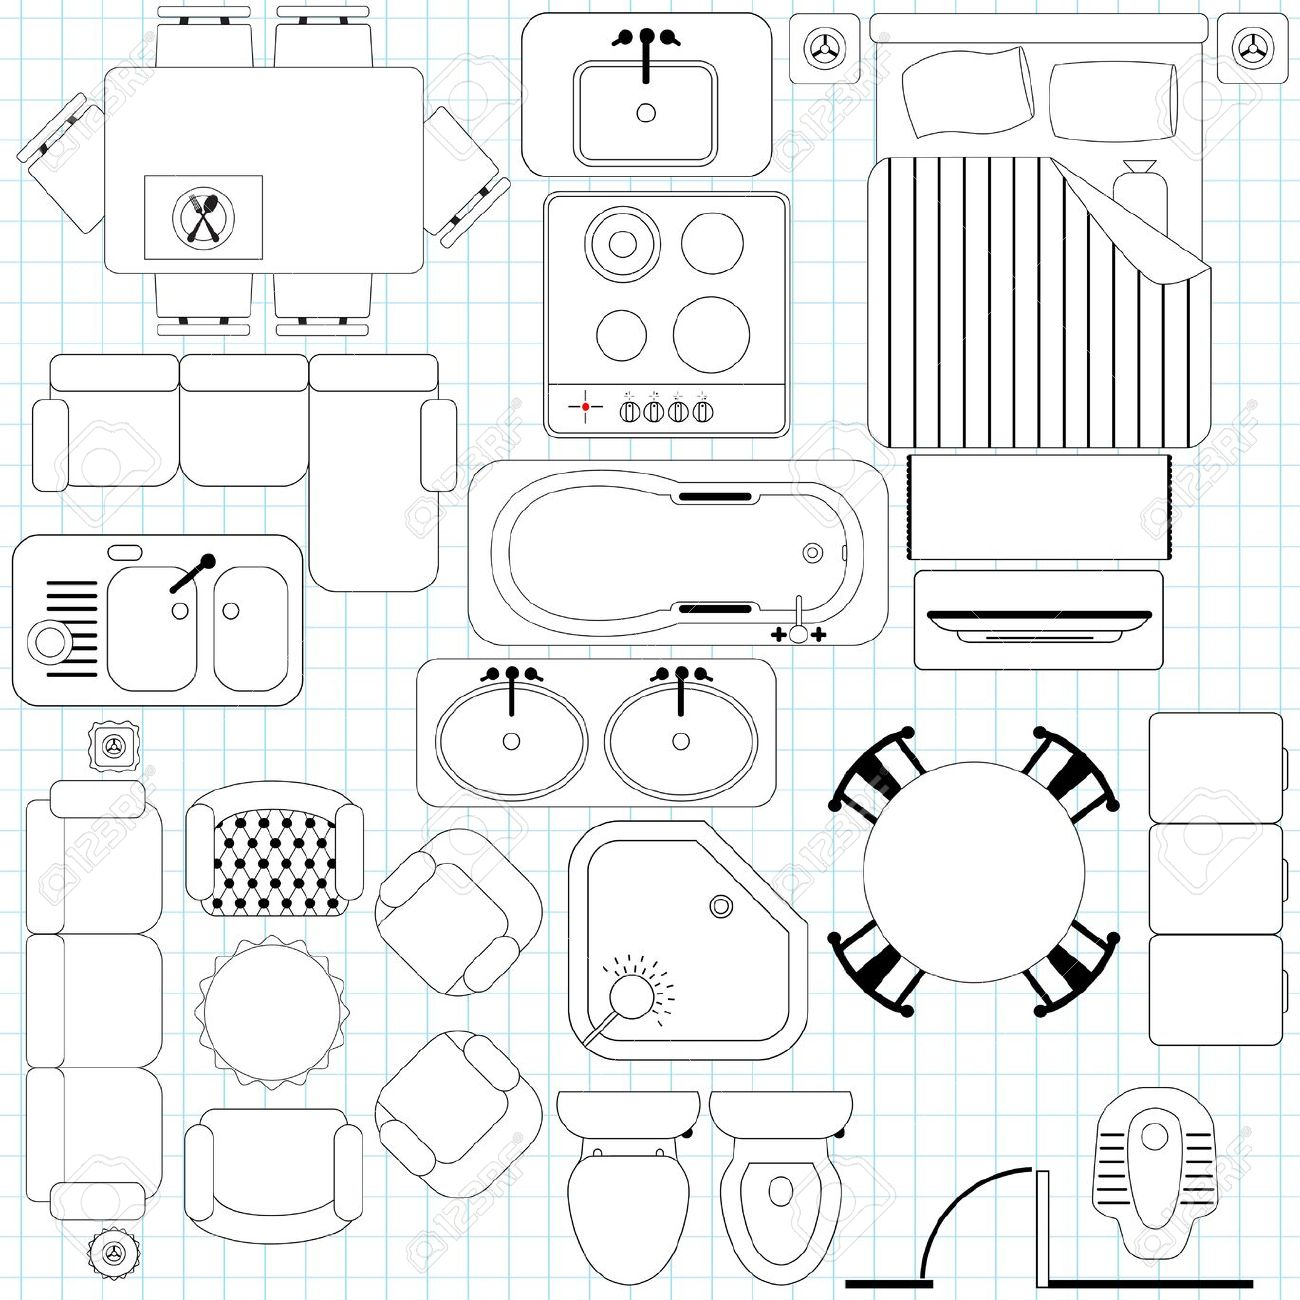 Free Architecture Symbols Cliparts, Download Free Clip Art.